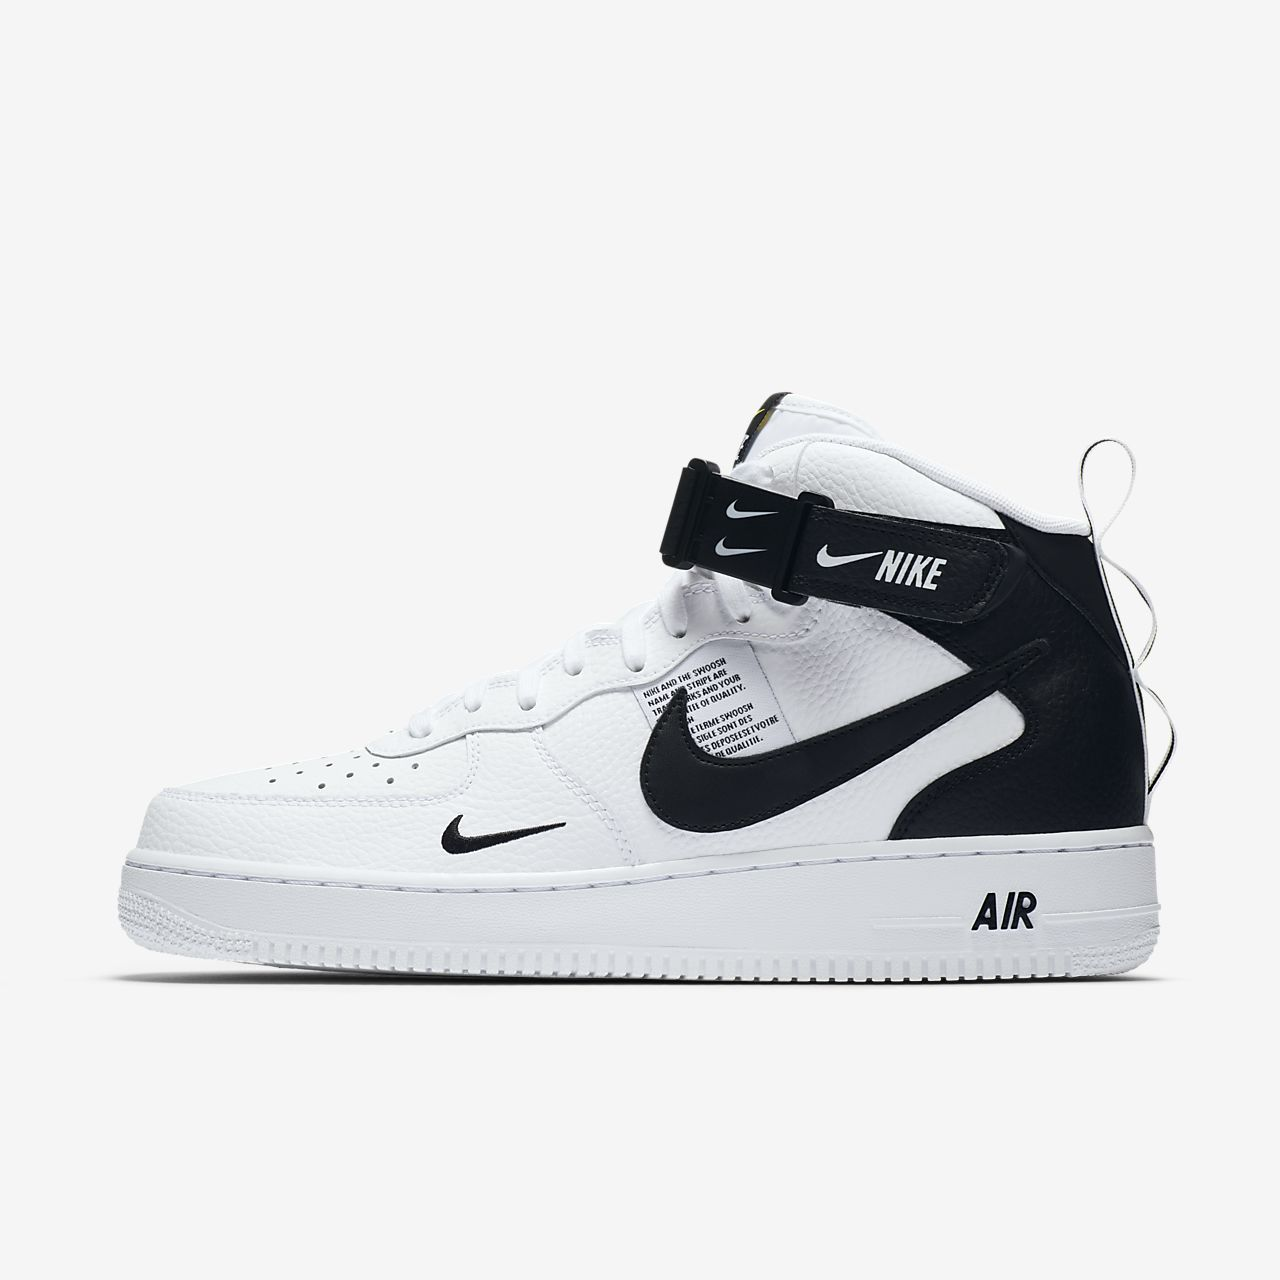 separation shoes a8bbb 33e88 ... Chaussure Nike Air Force 1 07 Mid LV8 pour Homme